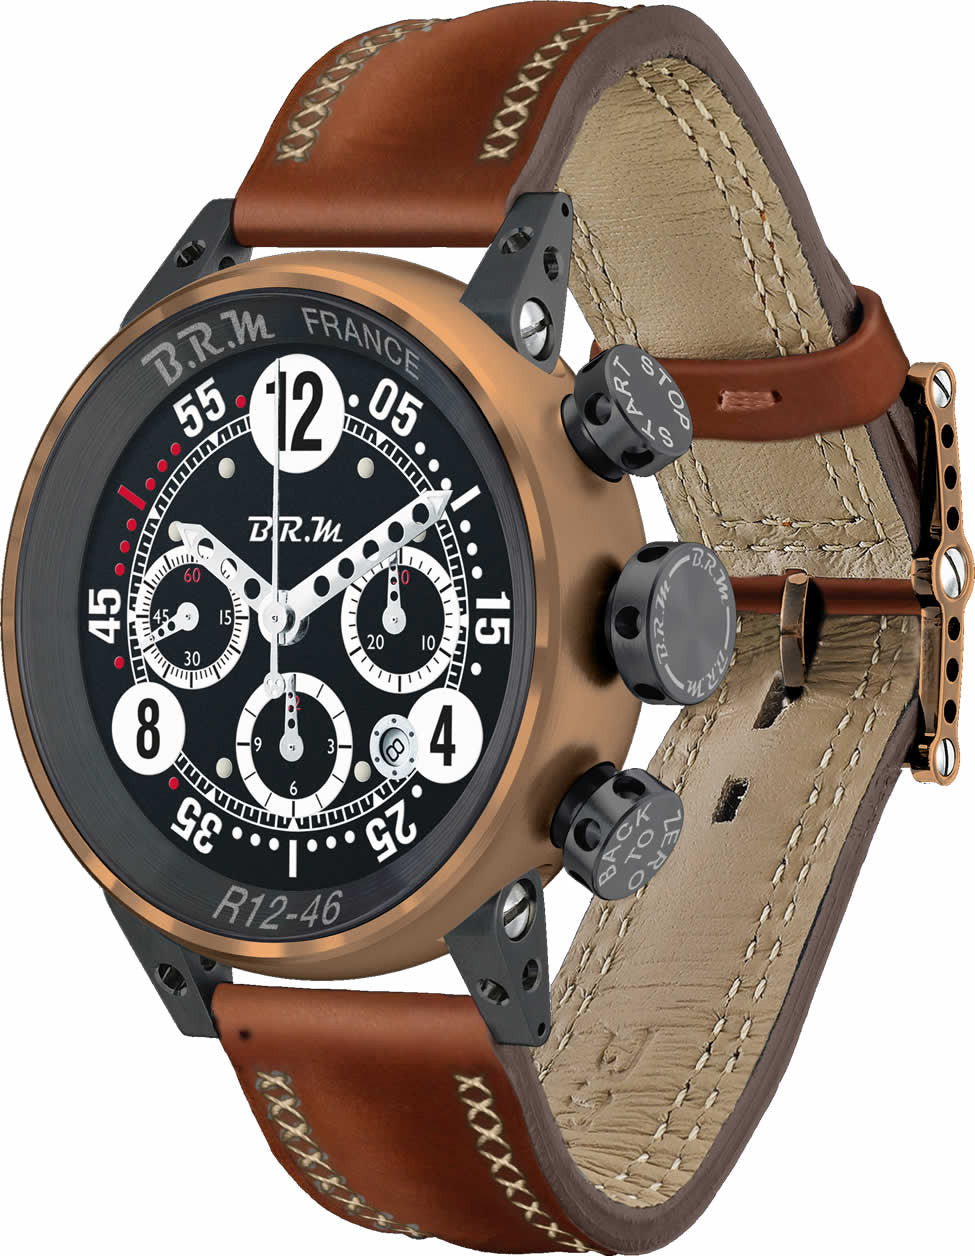 B.R.M Watch R12-46 Bronze